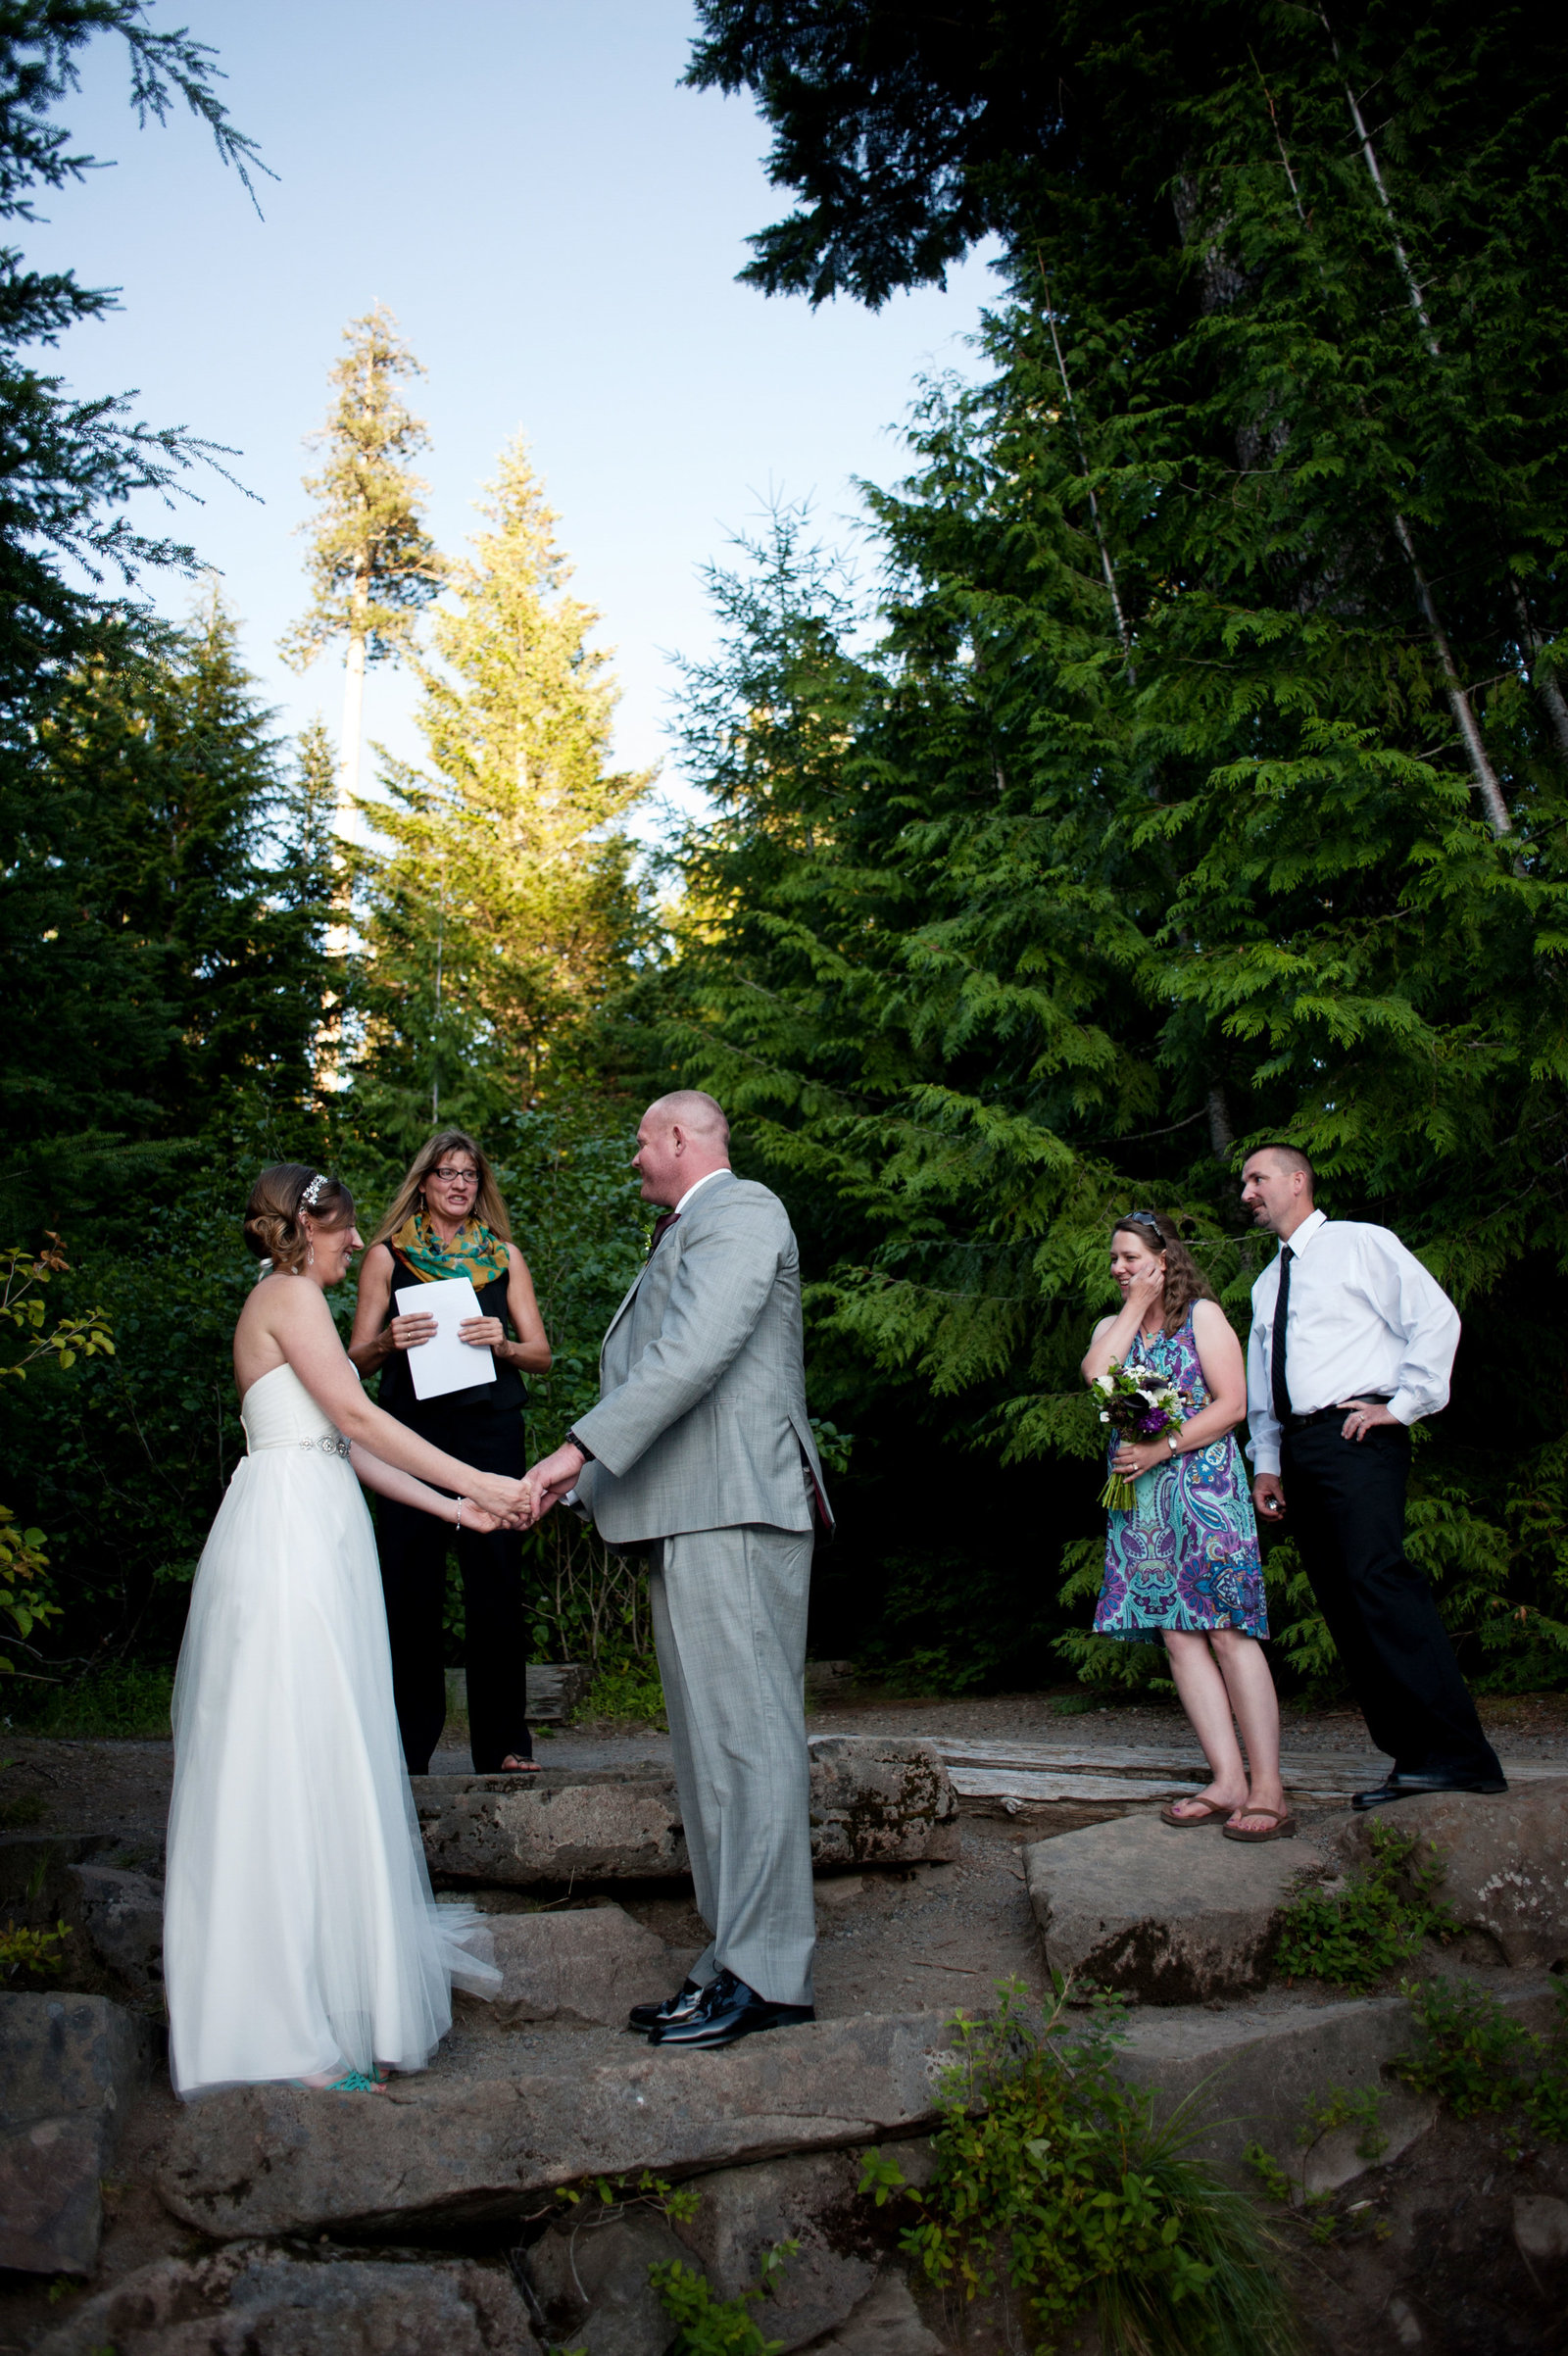 Crystal Genes Photography LOST LAKE WEDDING_140728-195133